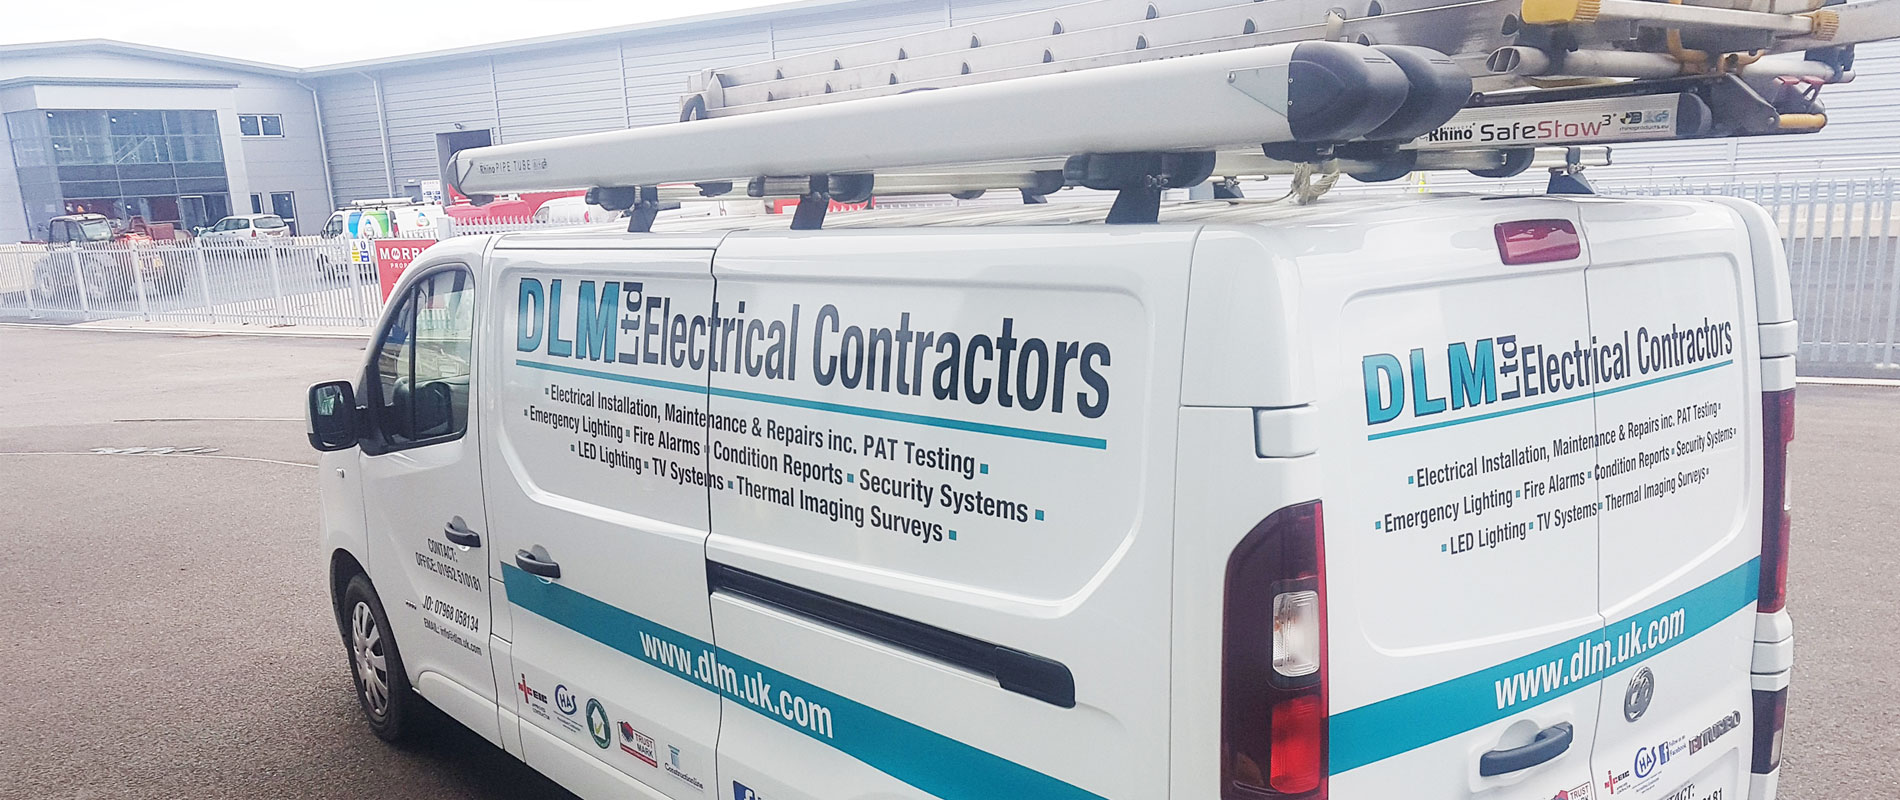 Electrical Contractors in Telford, Shropshire